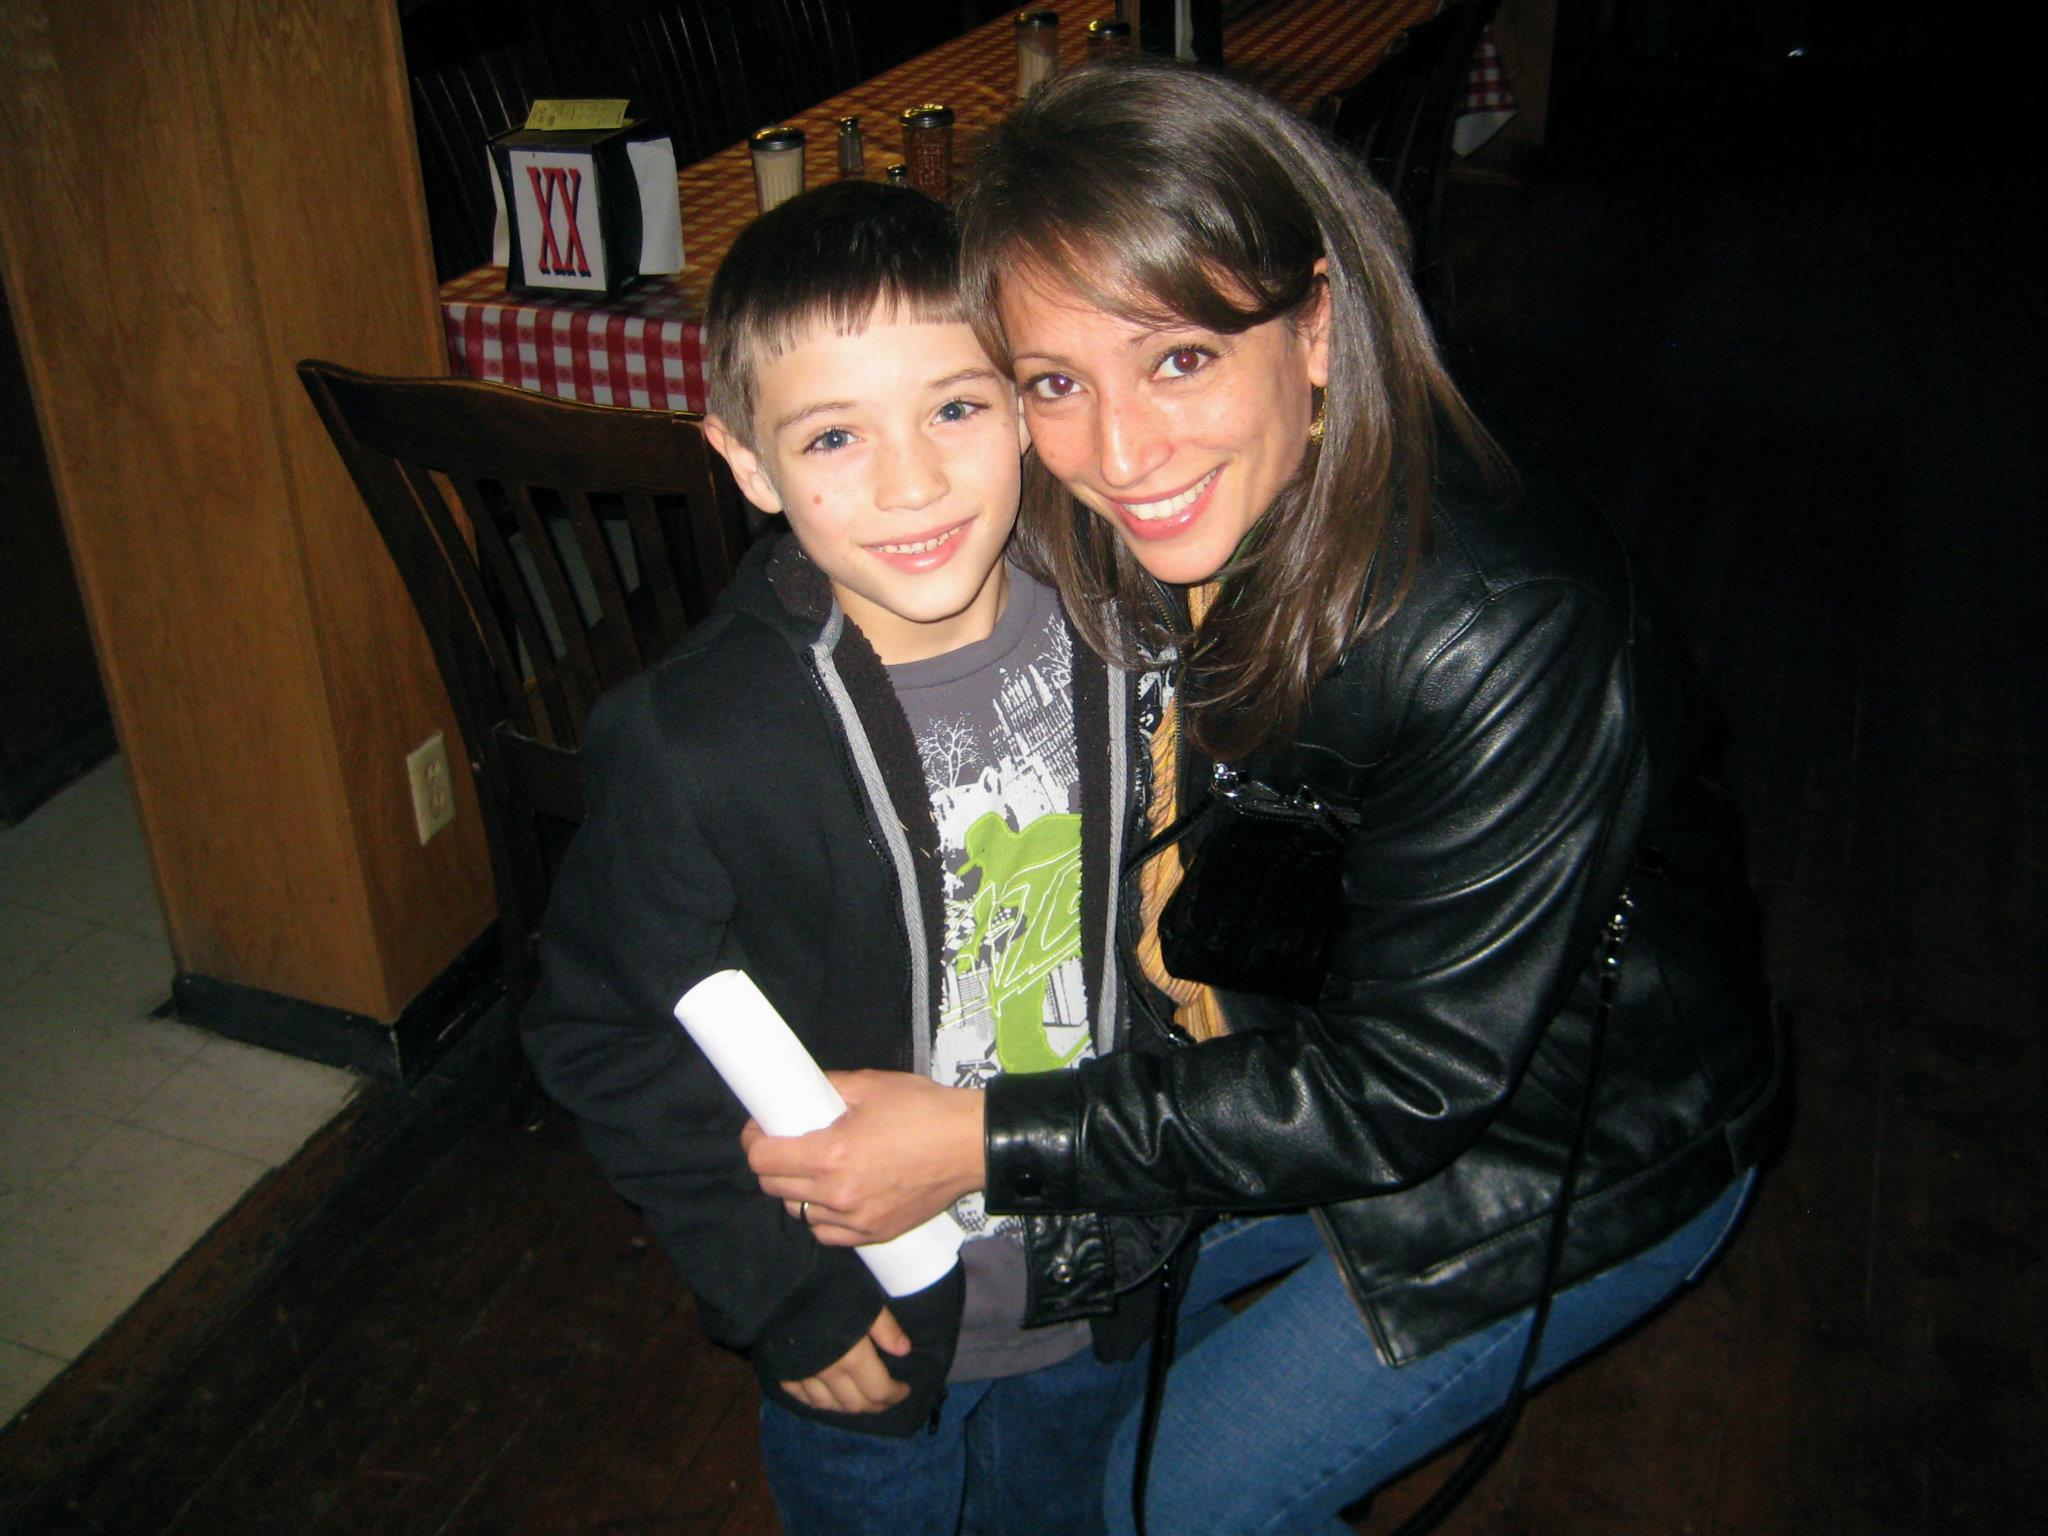 Linda and her son, Jared, at a PMA Christmas Party.